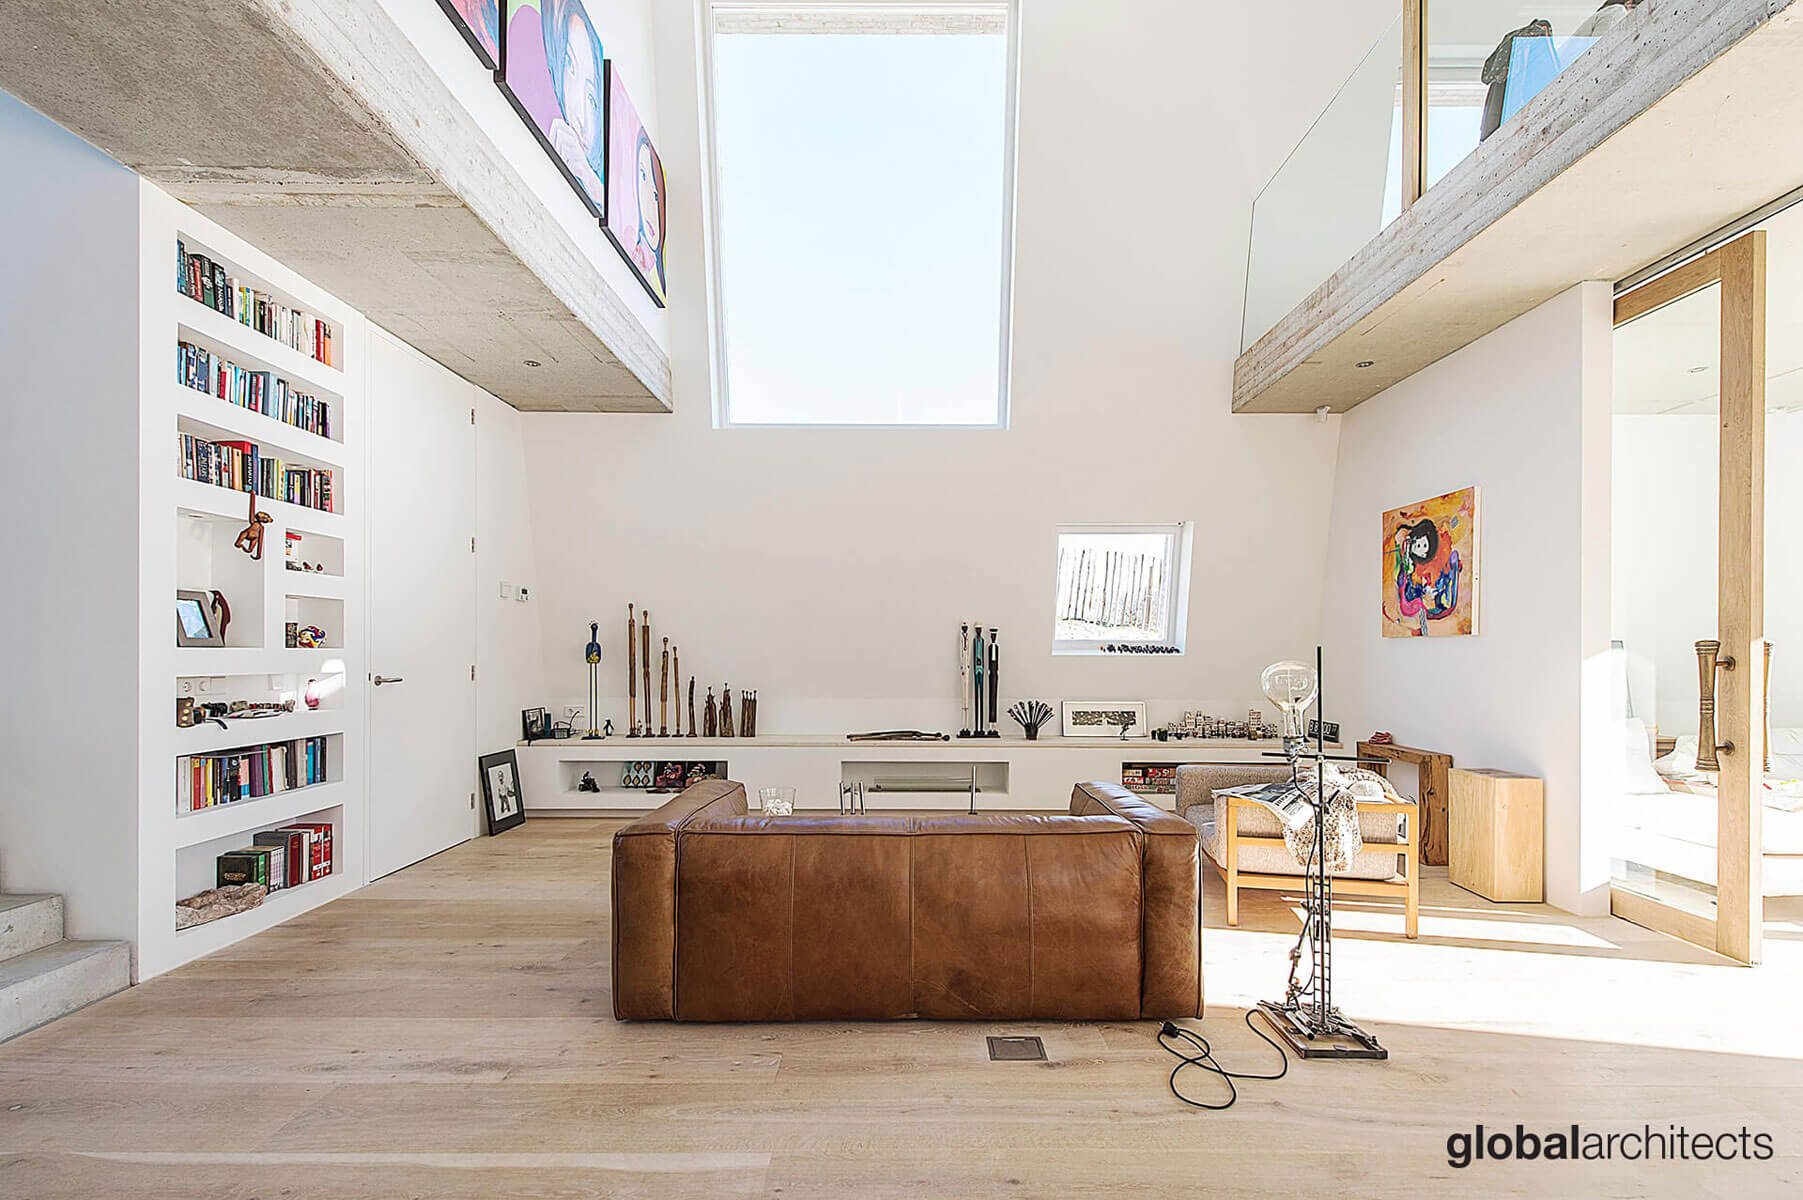 https://globalarchitects.nl/wp-content/uploads/2018/09/house-design-renovation-interior-architect-the-hague-amsterdam-statenkwartier-expat.jpg